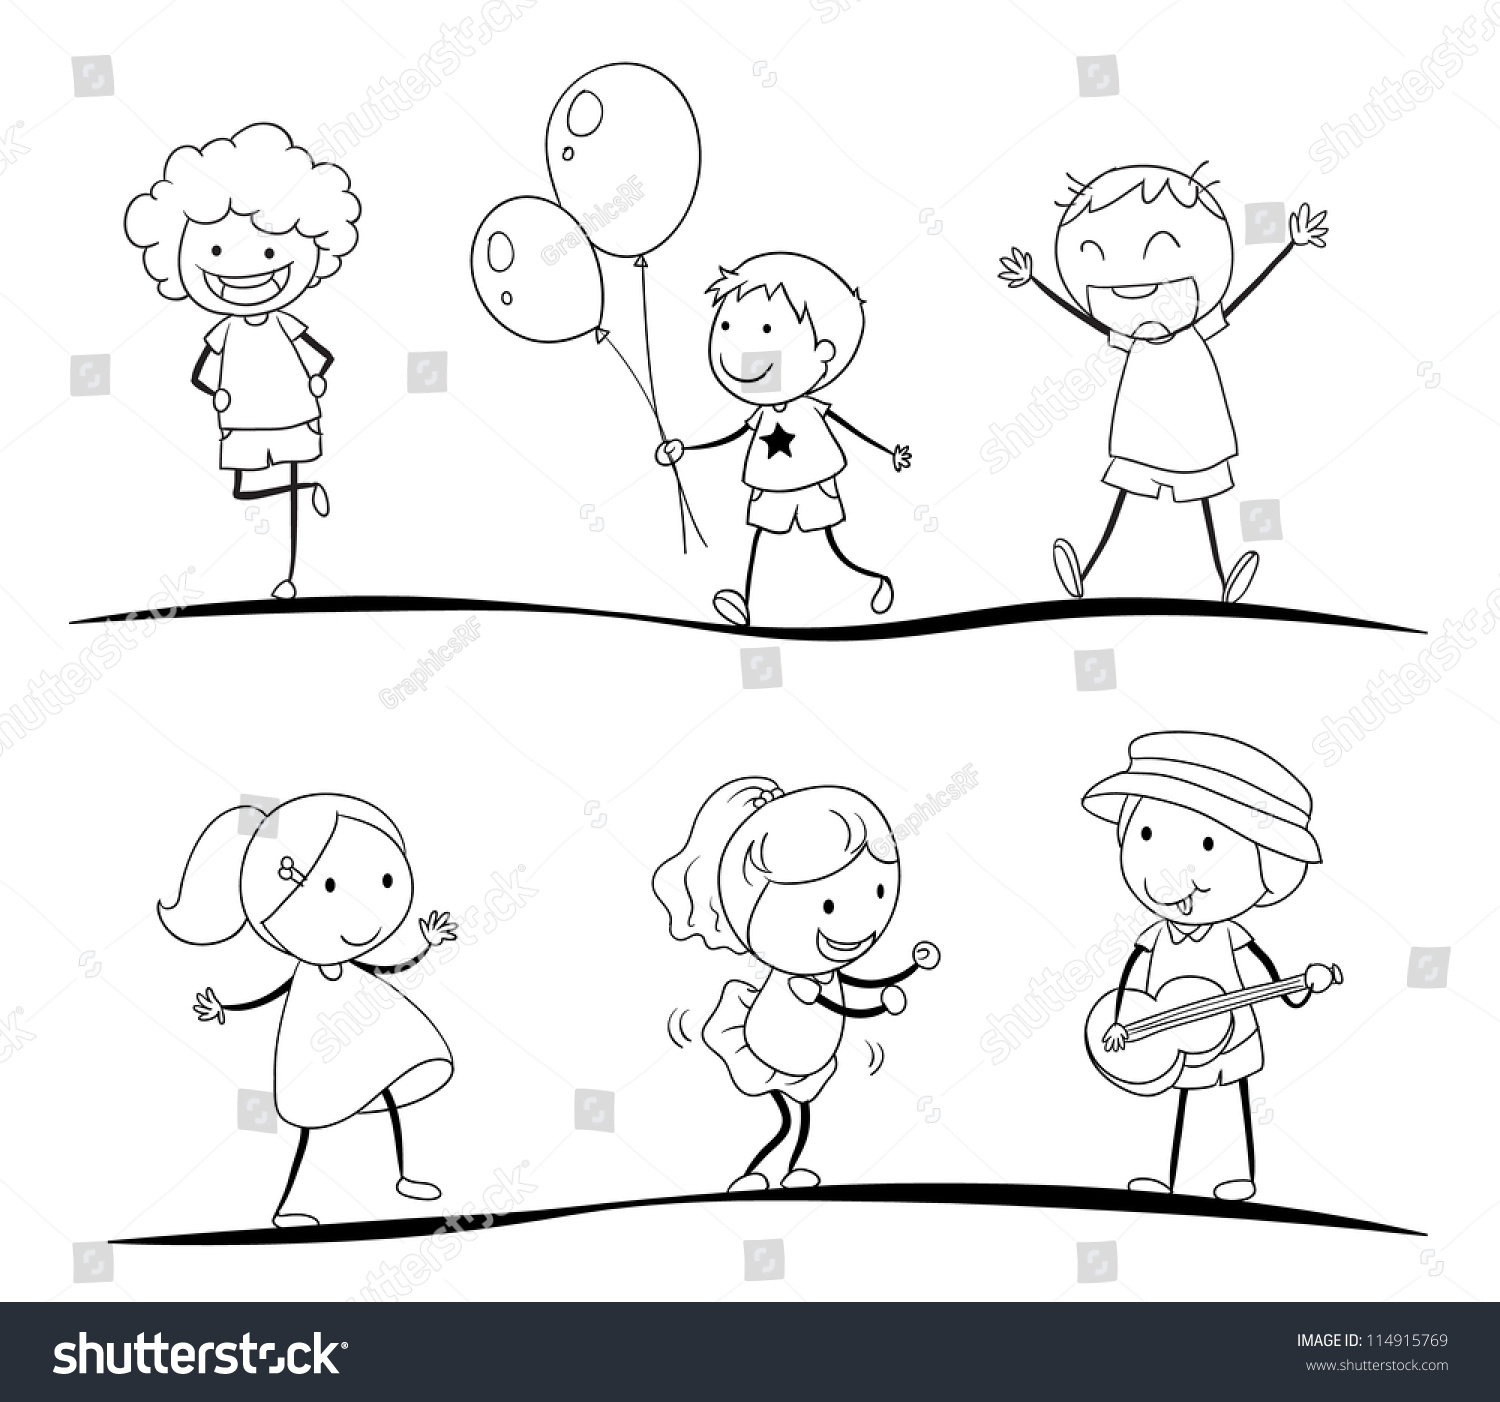 save to a lightbox - Sketches Of Kids